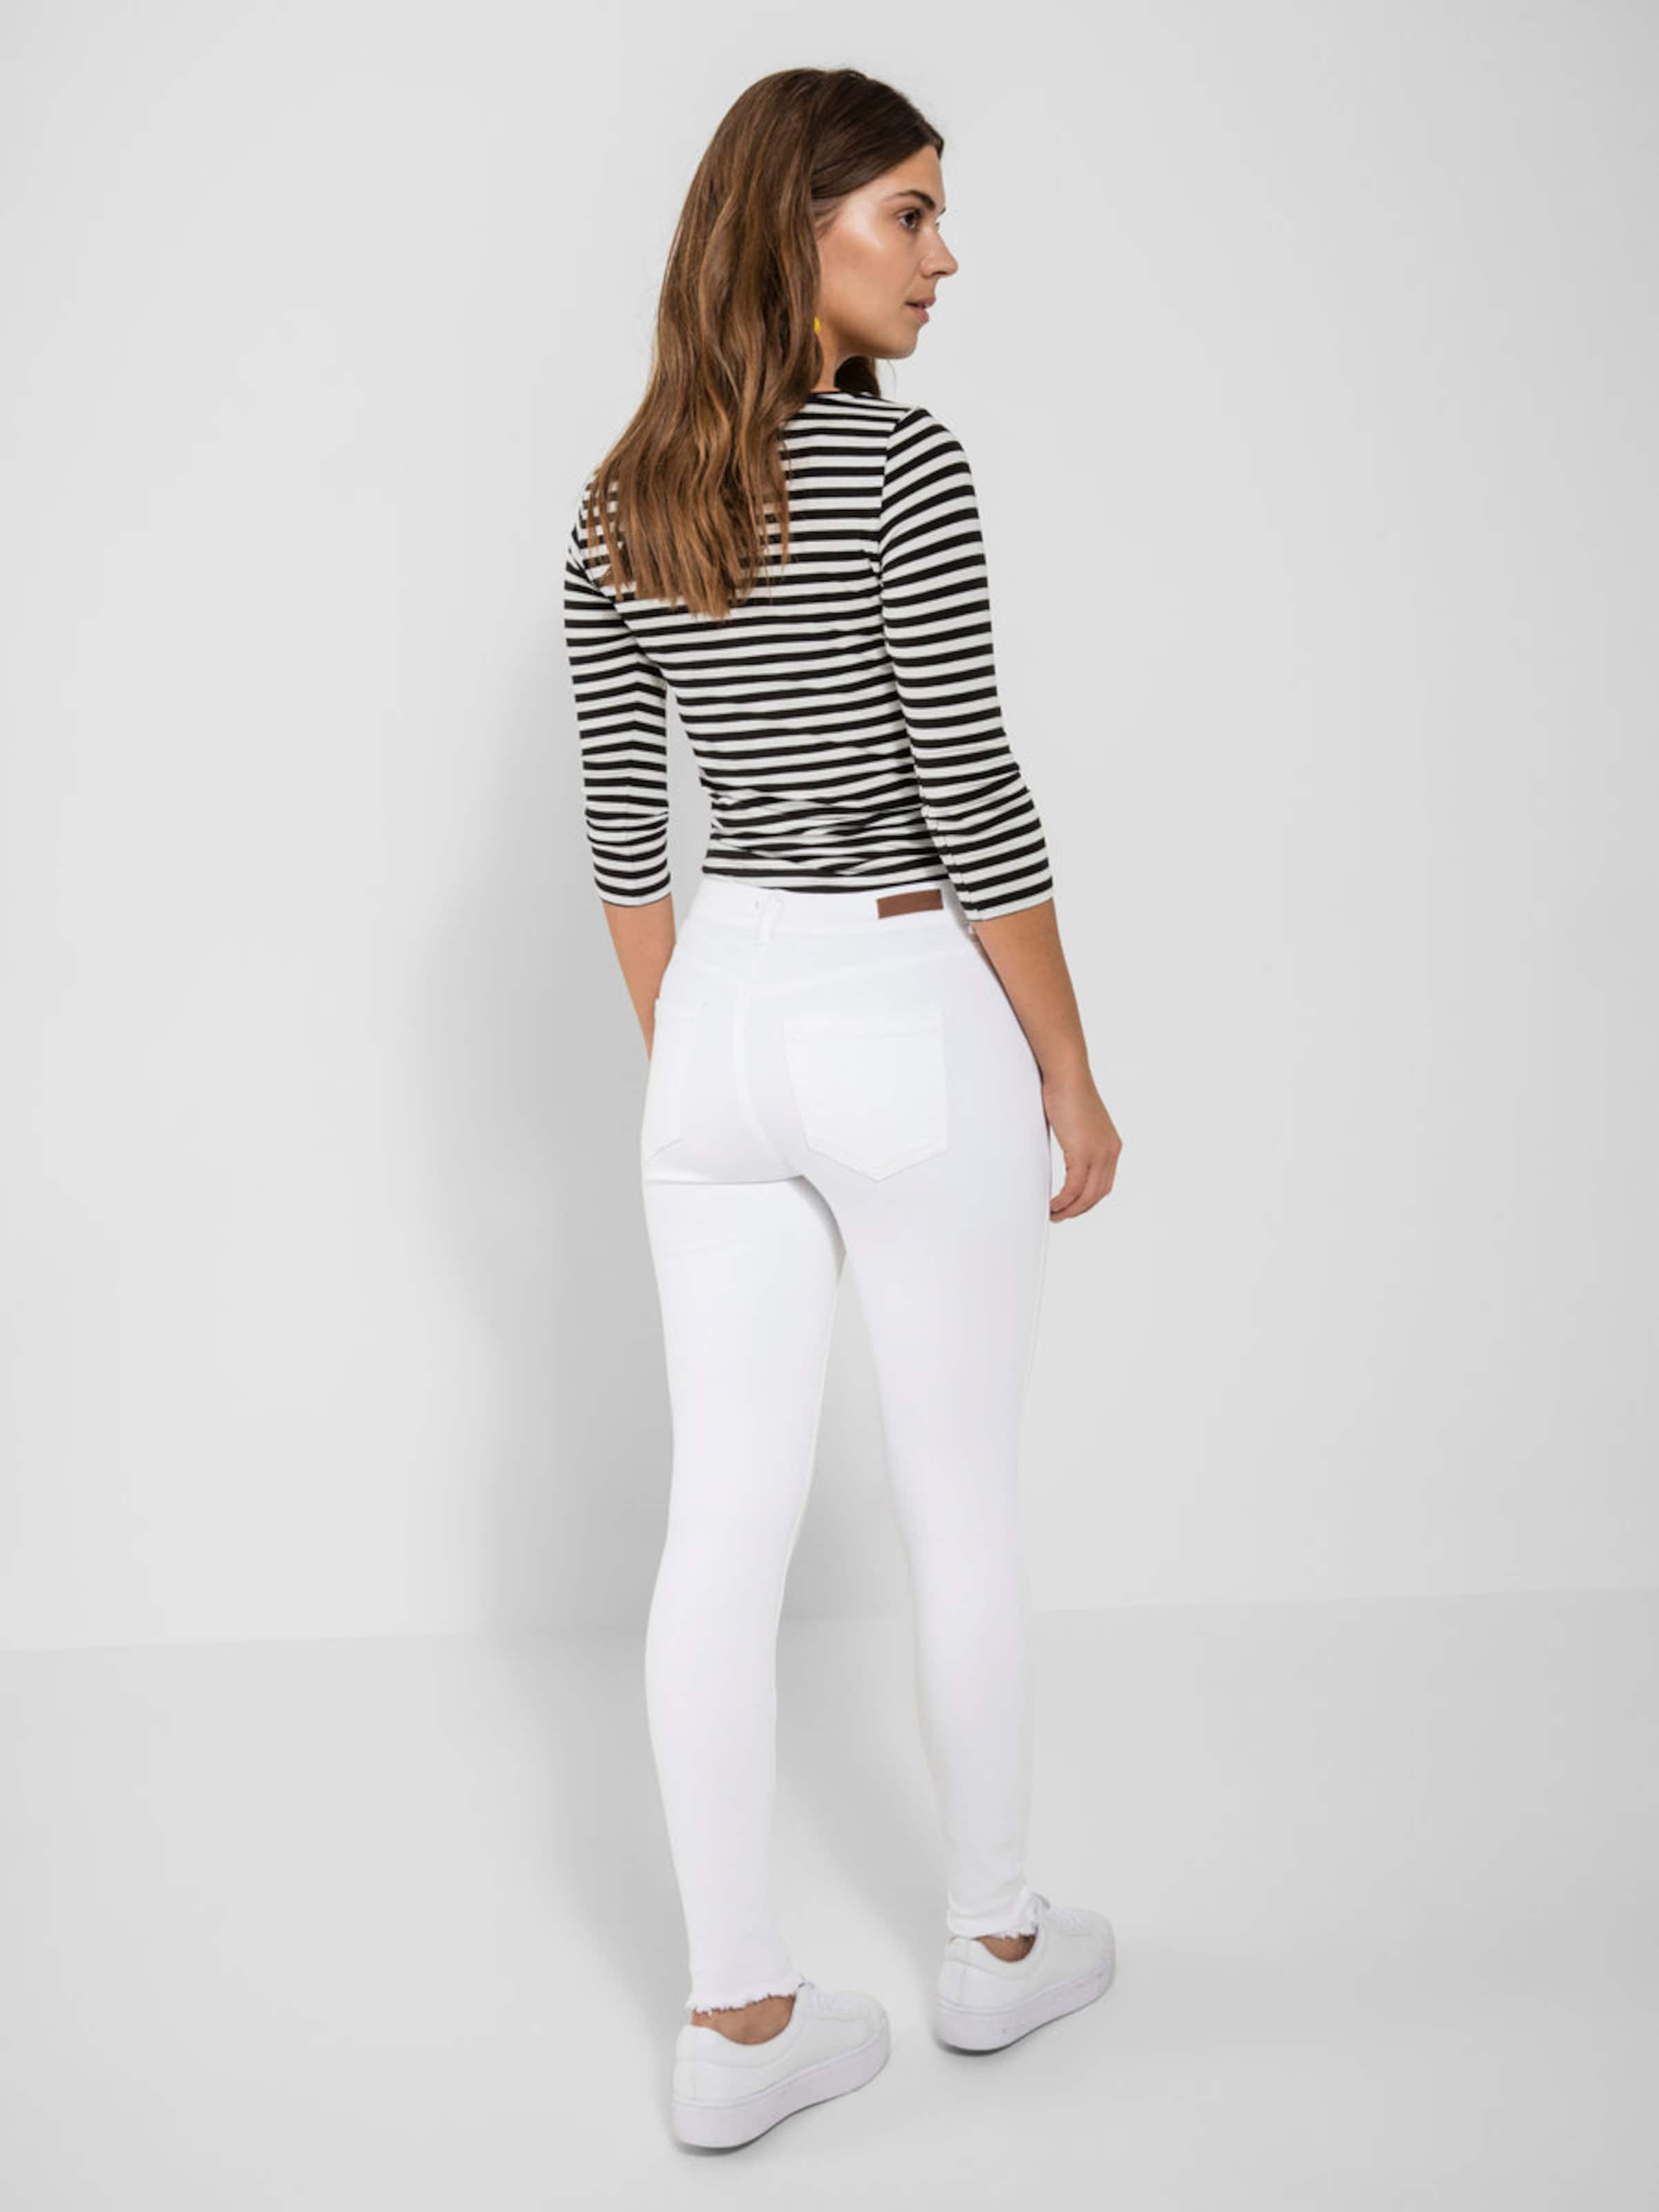 Blanc Jean En 'five Pieces Delly' 1c3lTJFK